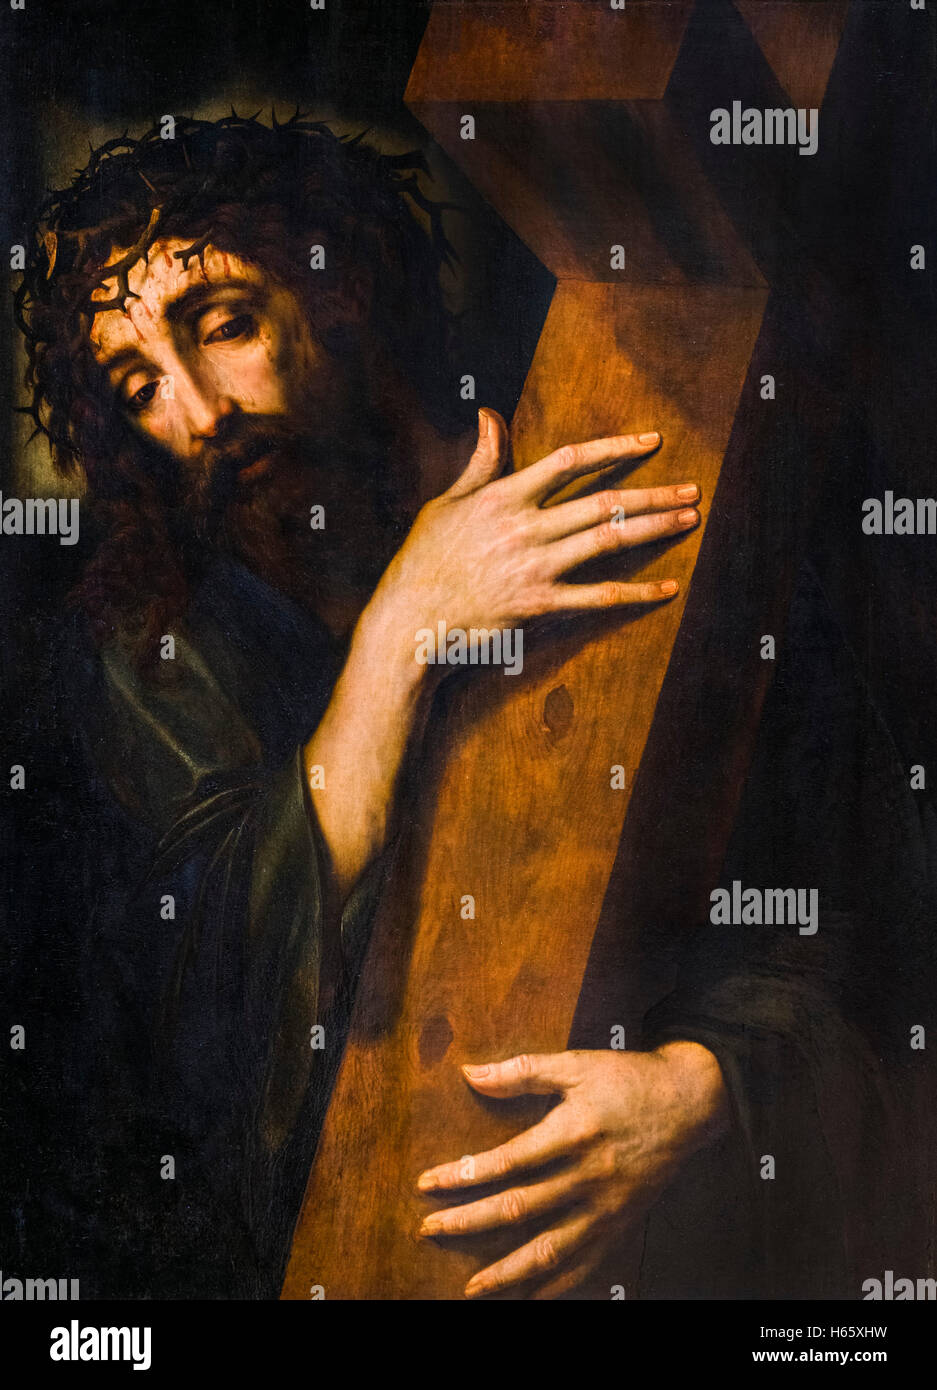 jesus christ carrying the cross by unknown flemish artist early